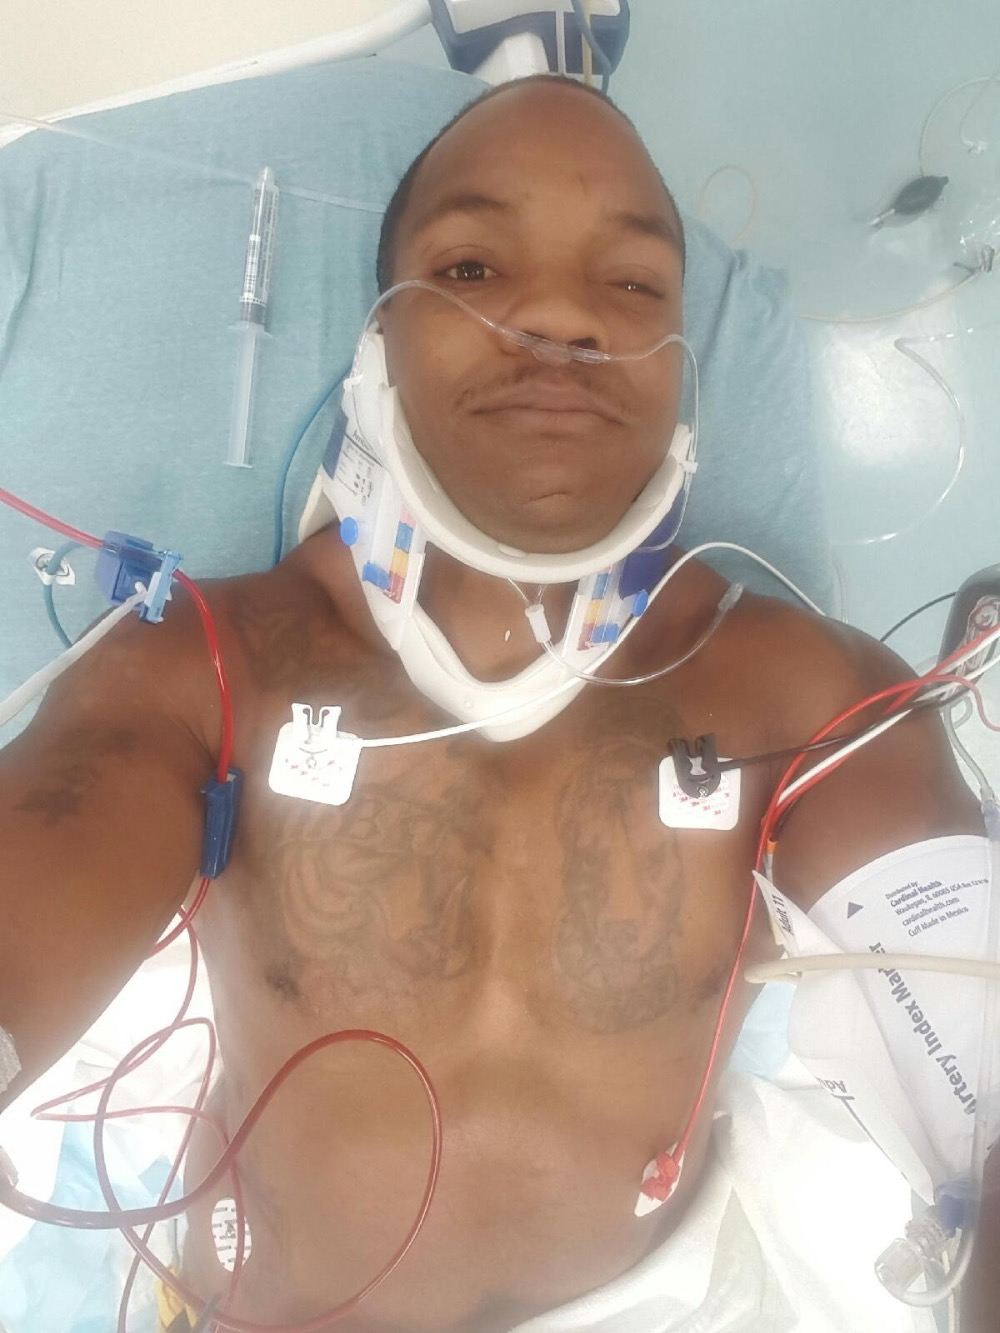 firefighter melvin middlebrooks by marne richards gofundme firefighter melvin middlebrooks has narrowly escaped his life after being involved in a traumatic motorcycle crash he was riding on his way to work